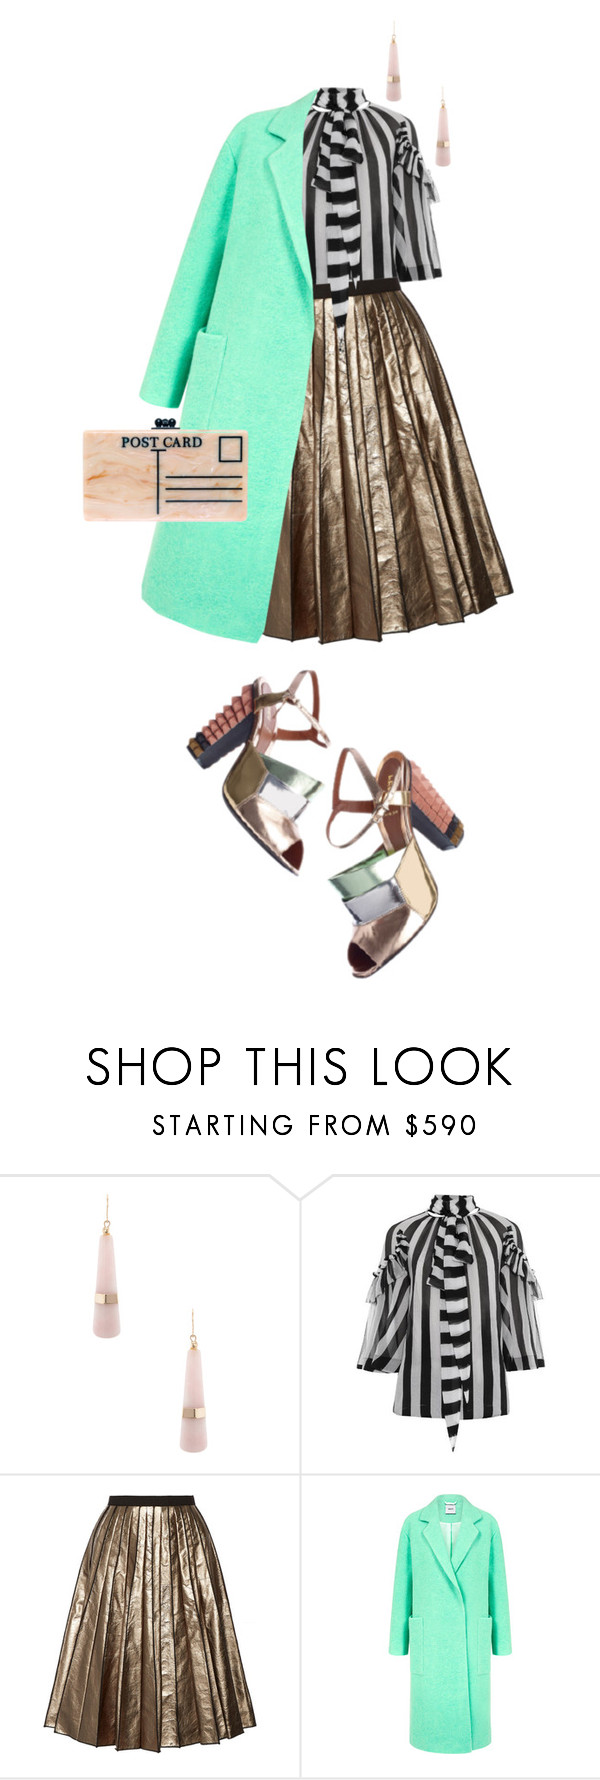 """""""partytime"""" by bananya ❤ liked on Polyvore featuring Givenchy, Marc Jacobs, Edit, Edie Parker, HolidayParty, Colorfulcoat and winteressentials"""